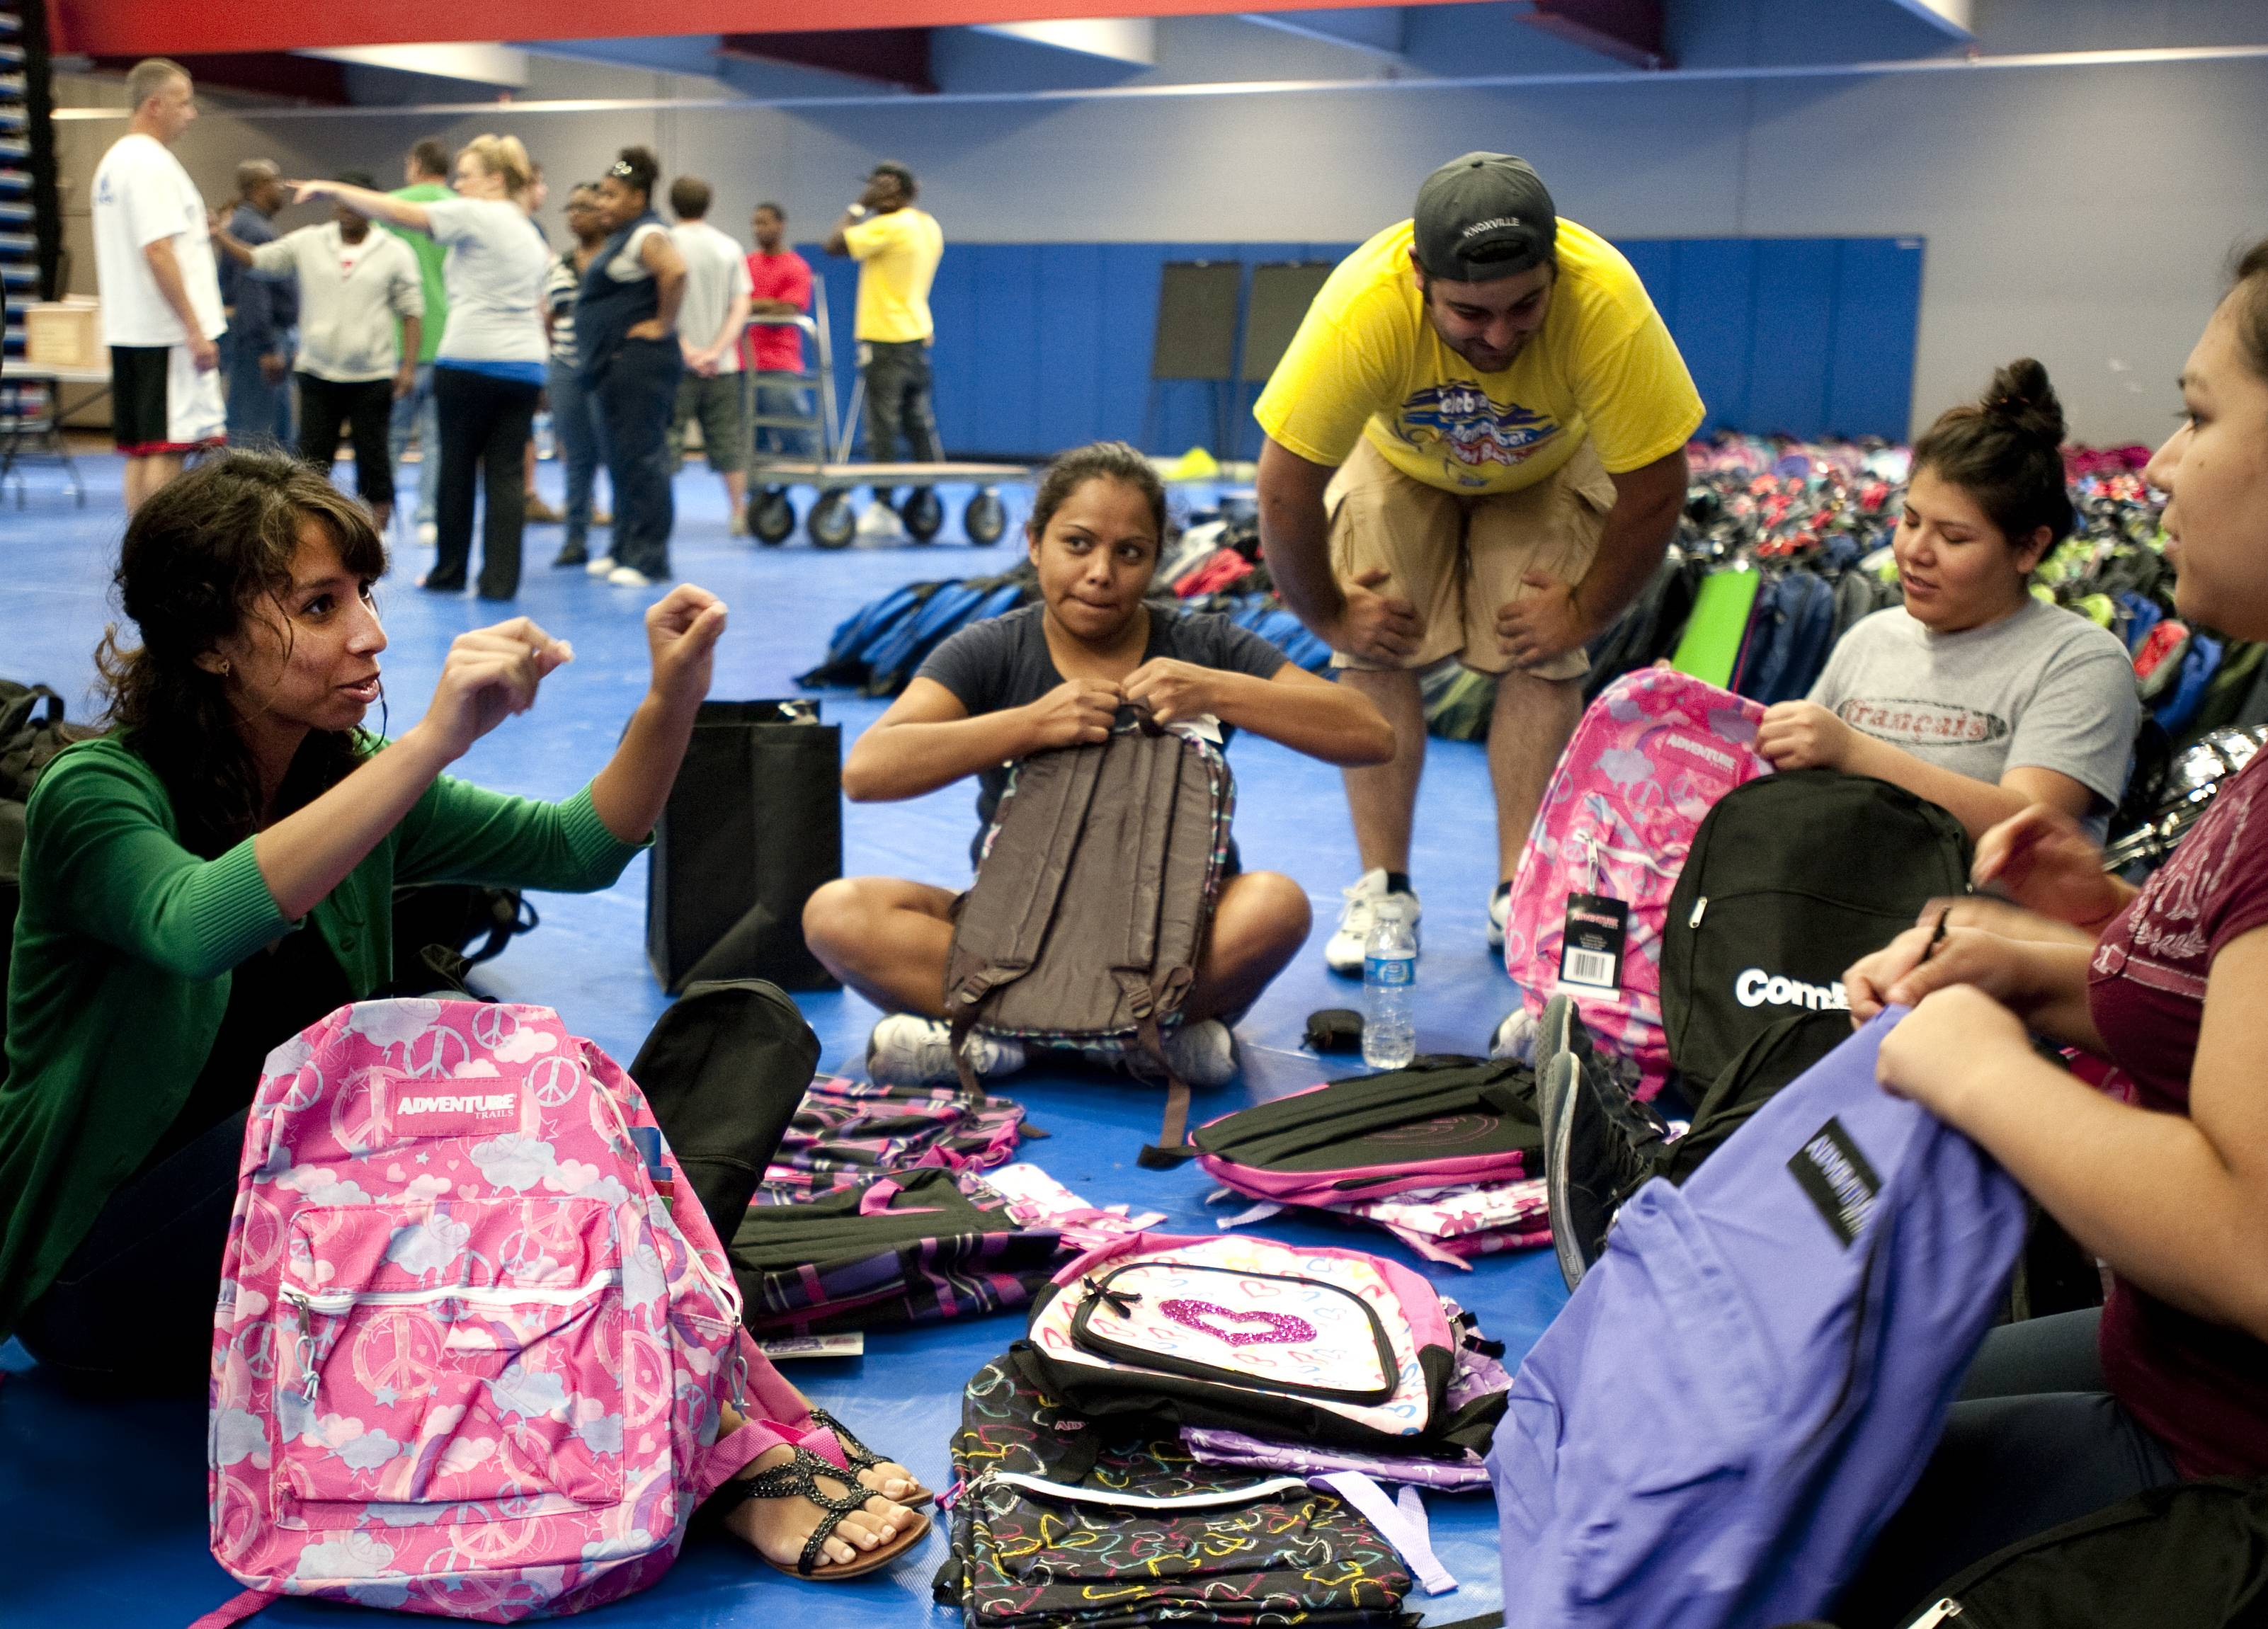 Elgin Community College students pack backpacks for a recent Project Backpack event. Roughly 5,000 people lined up for the event last year when the college gave away more than 2,000 backpacks. This year's backpack give away is 9 a.m. to 2 p.m. Saturday.